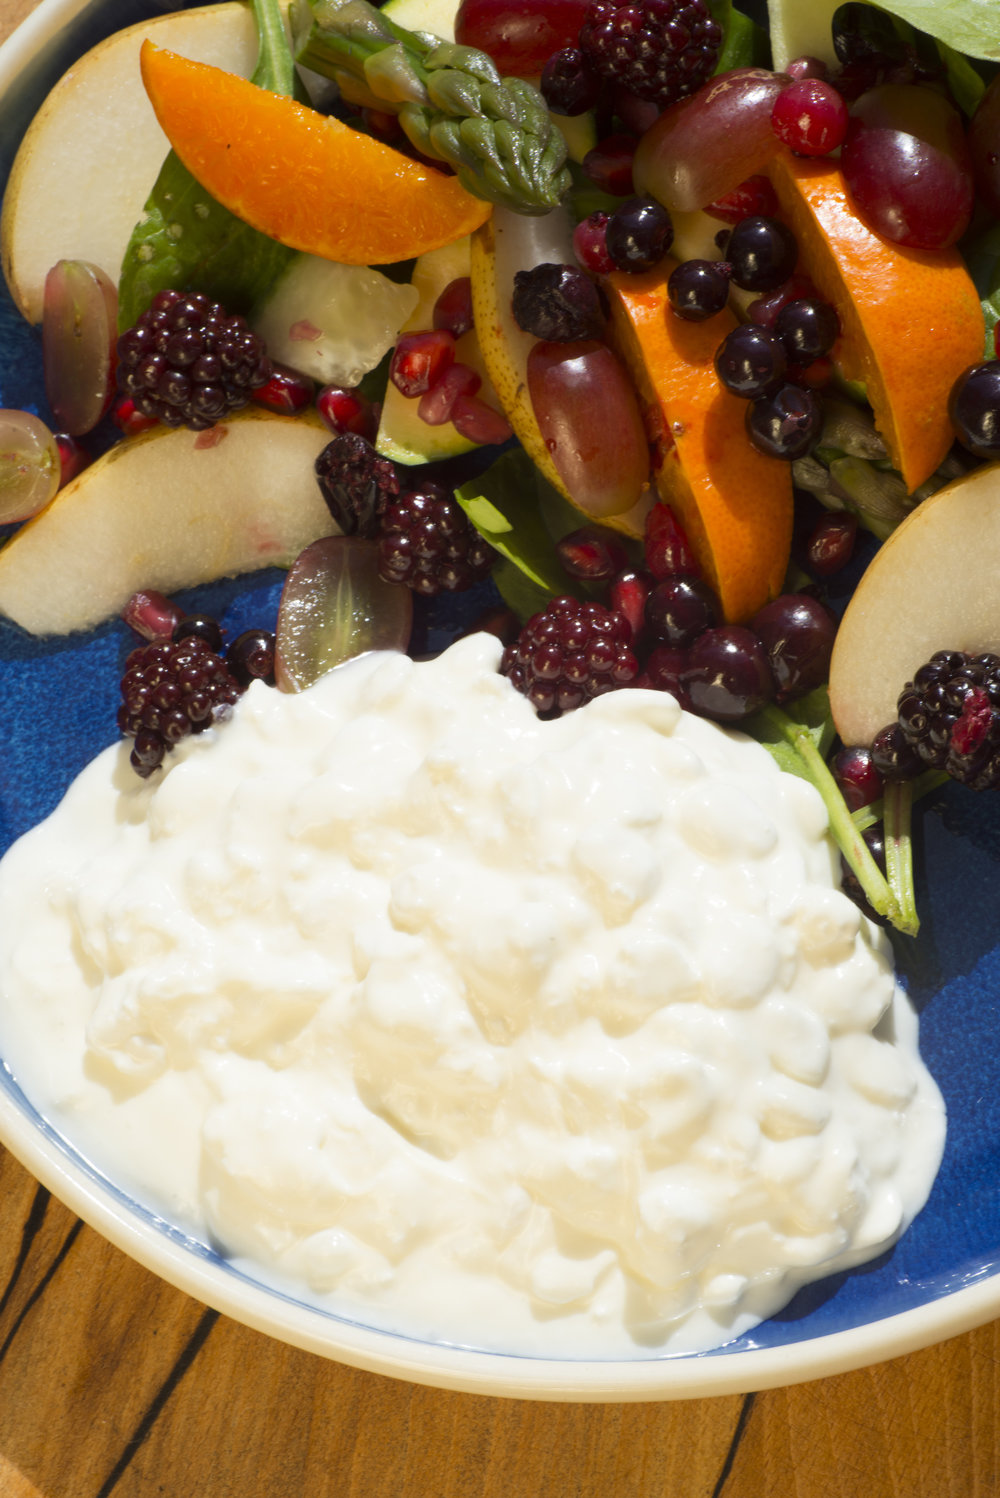 Cottage Cheese with Mixed Fruit and Veg